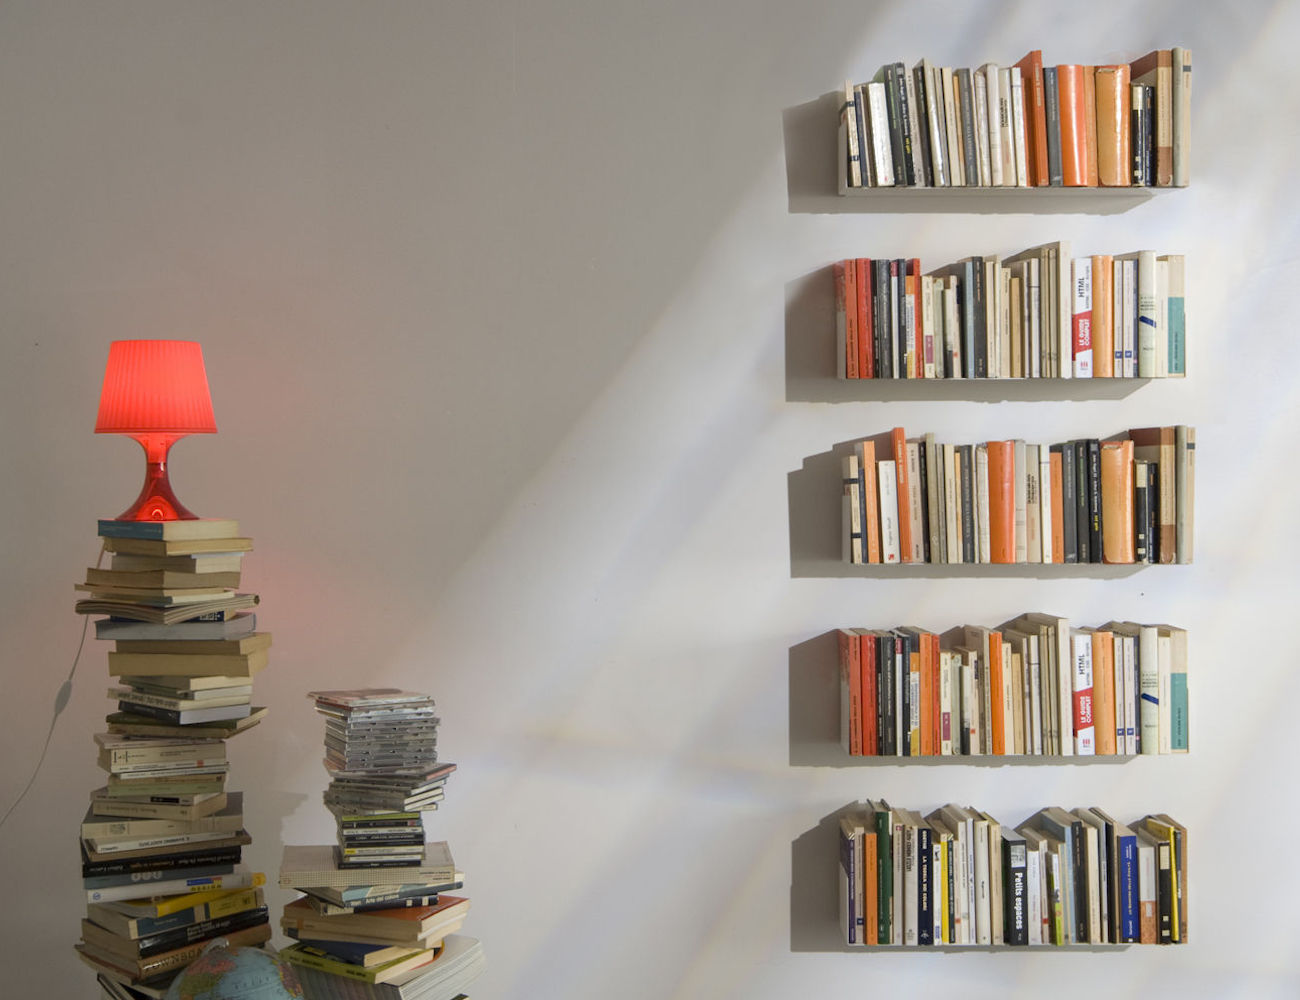 Judd wall shelves by teebooks keep your books suspended in air judd wall shelves by teebooks keep your books suspended in air amipublicfo Image collections